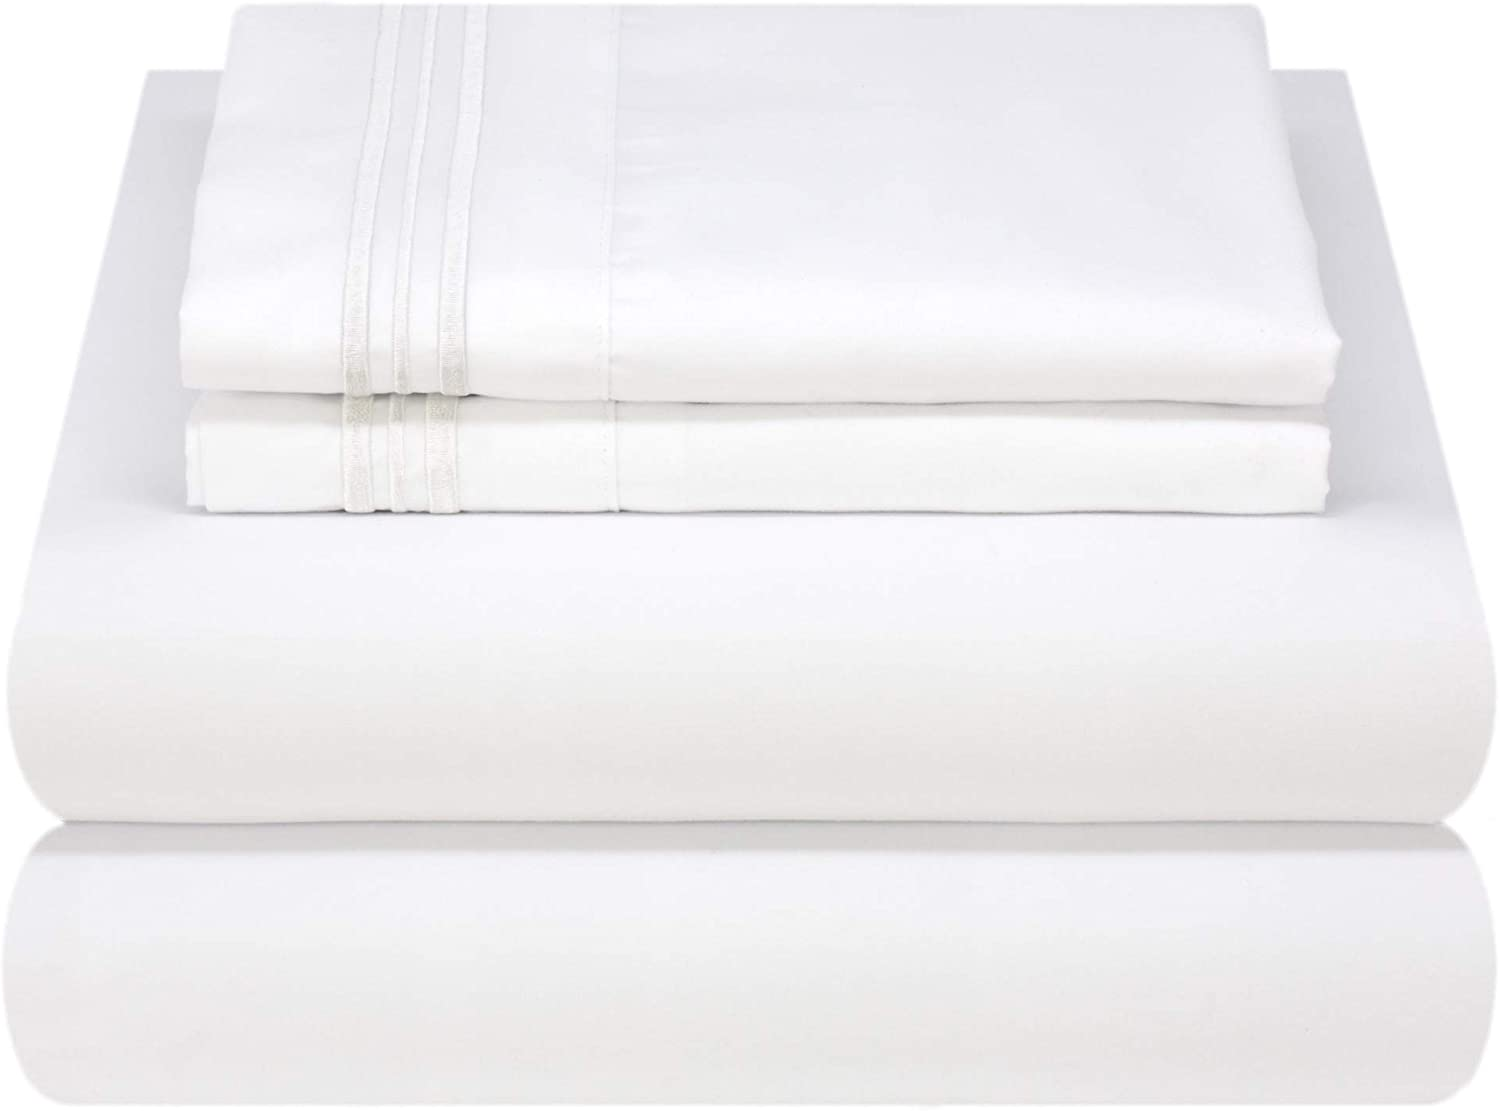 Mezzati Luxury Bed Sheet Set - Soft and Comfortable 1800 Prestige Collection - Brushed Microfiber Bedding (White, Queen Size): Home & Kitchen